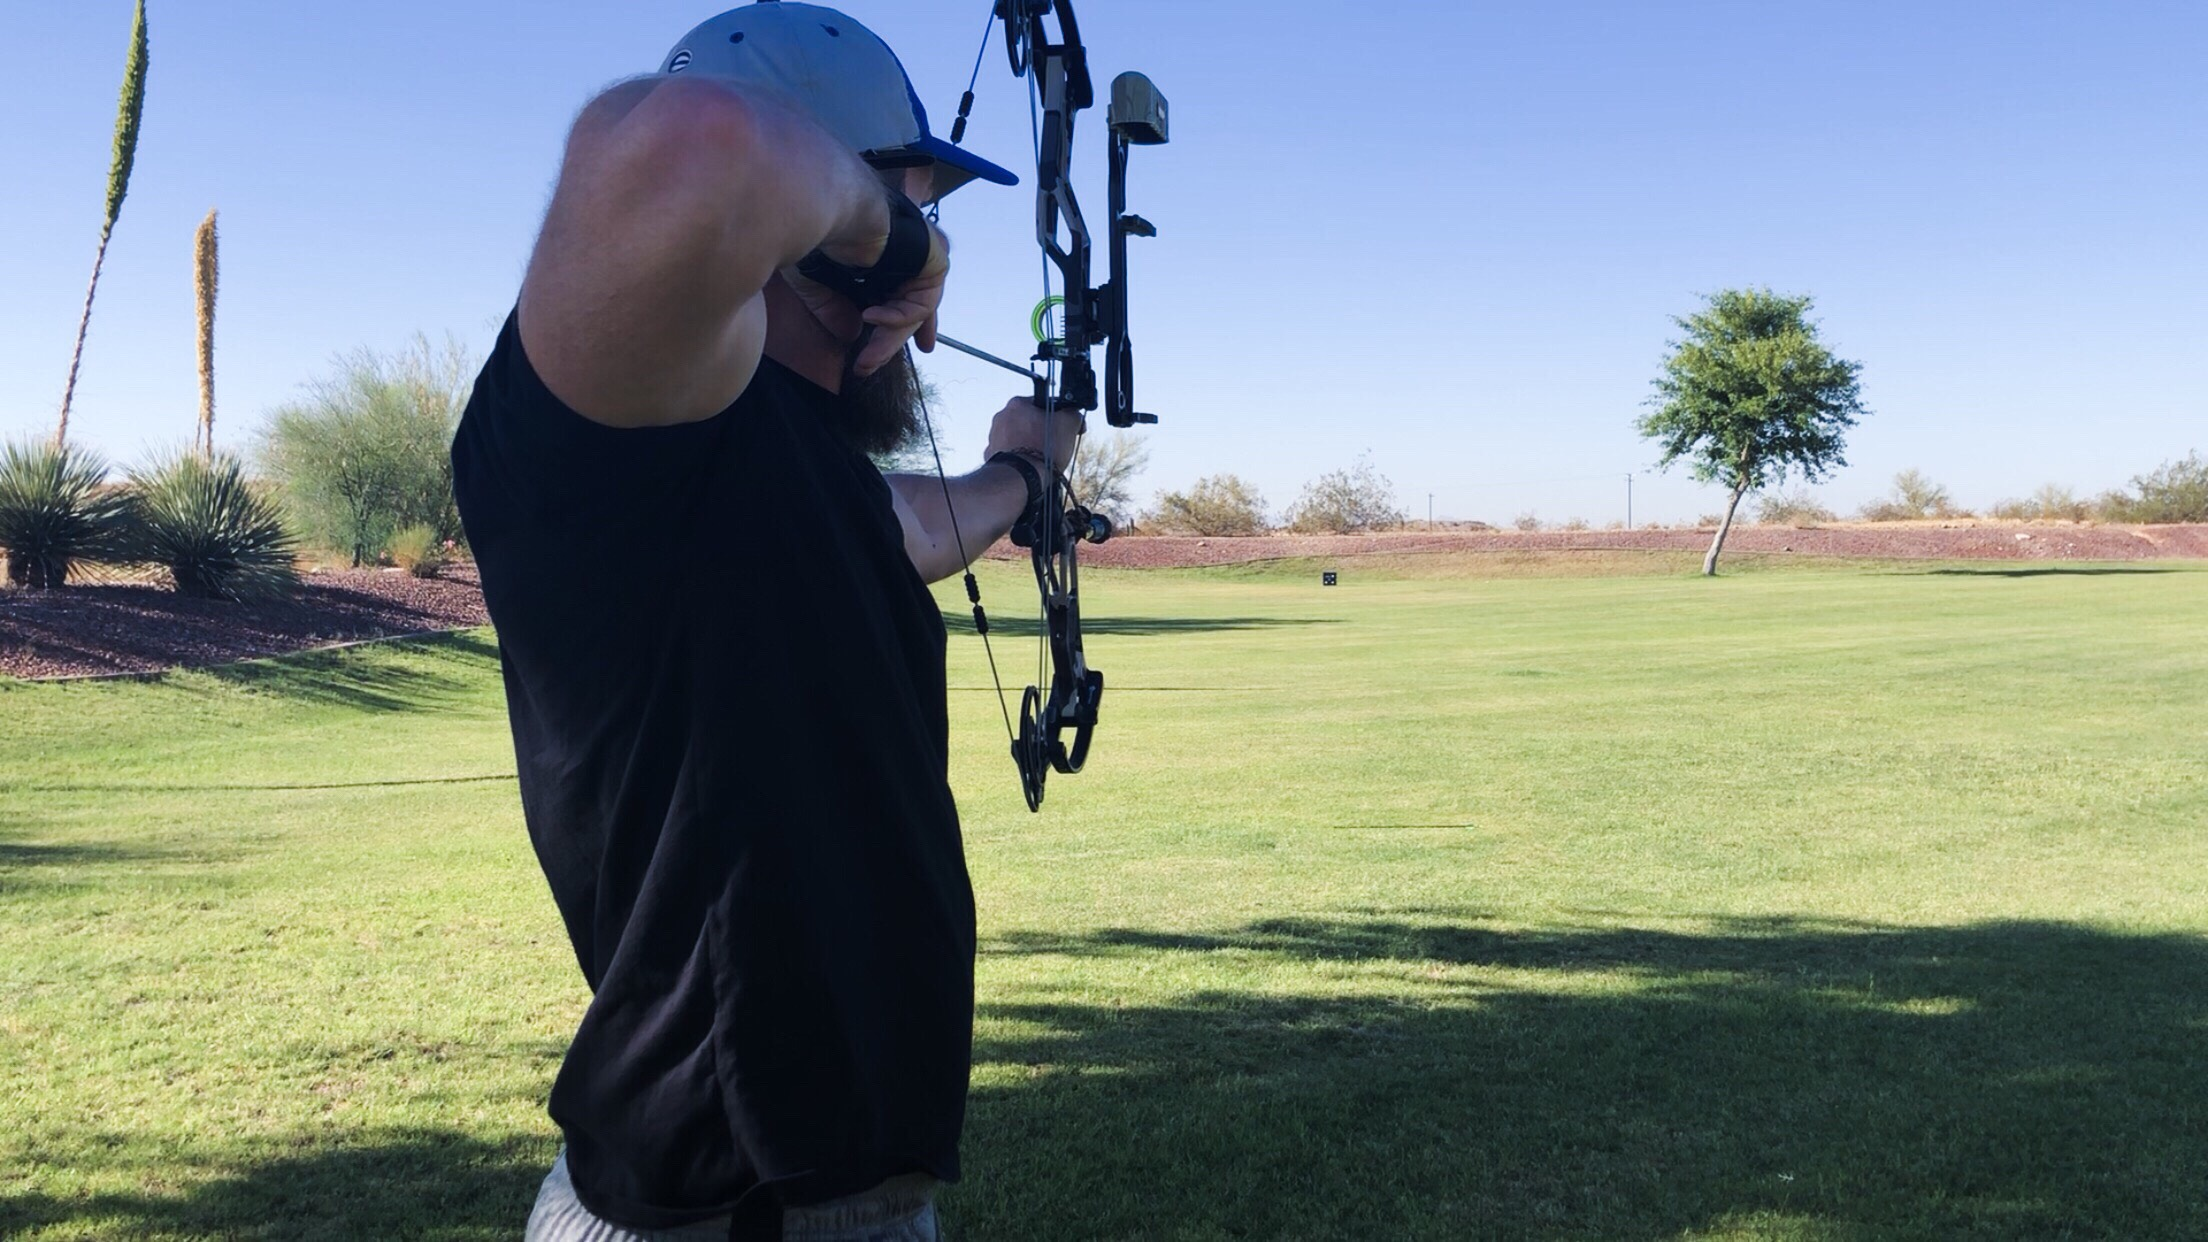 I CHOOSE to make time for things that help me unwind…like shooting my bow as often as possible!